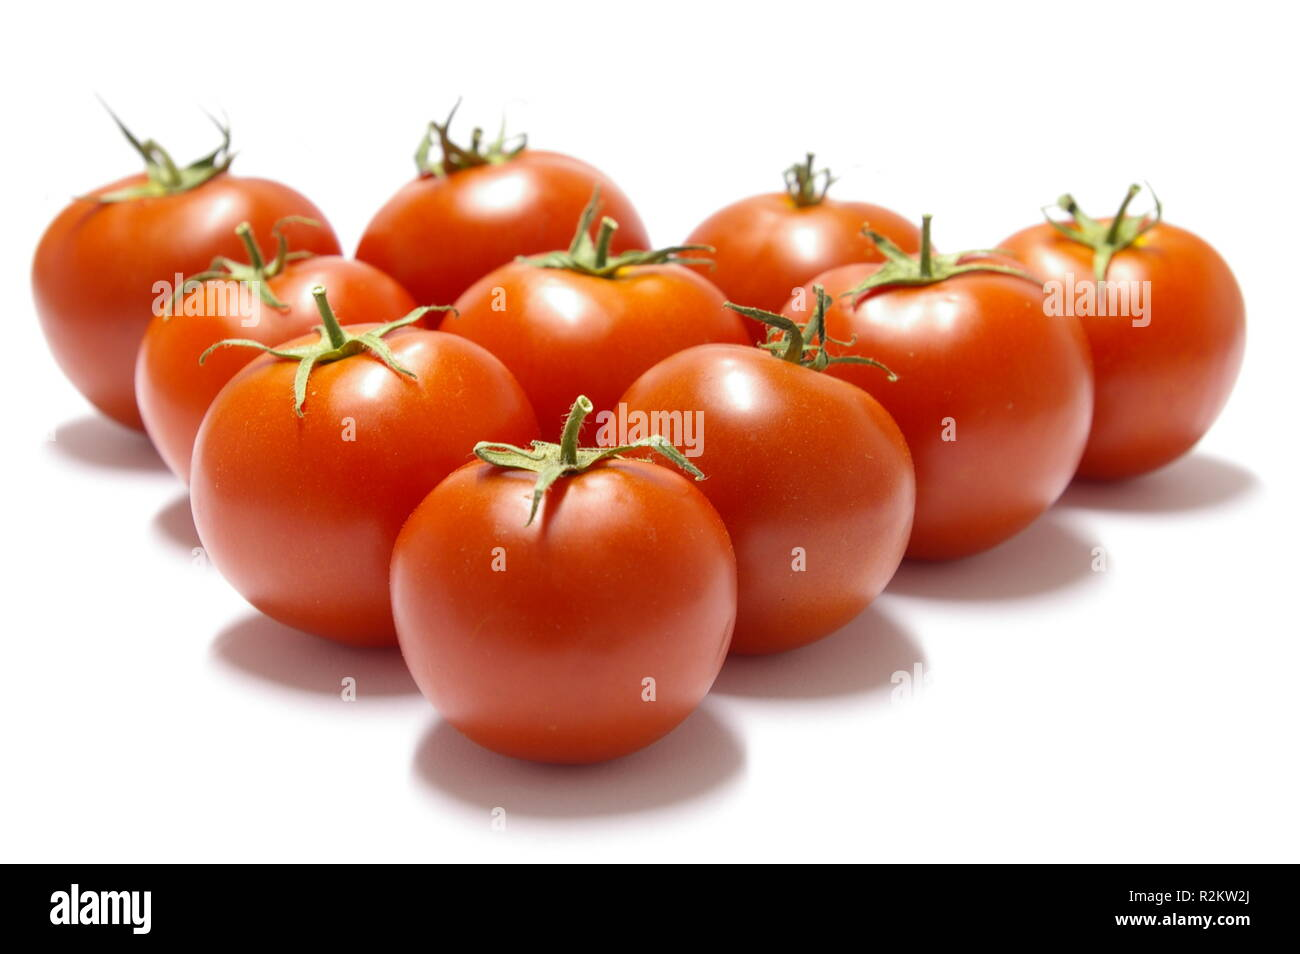 ten tomatoes - Stock Image